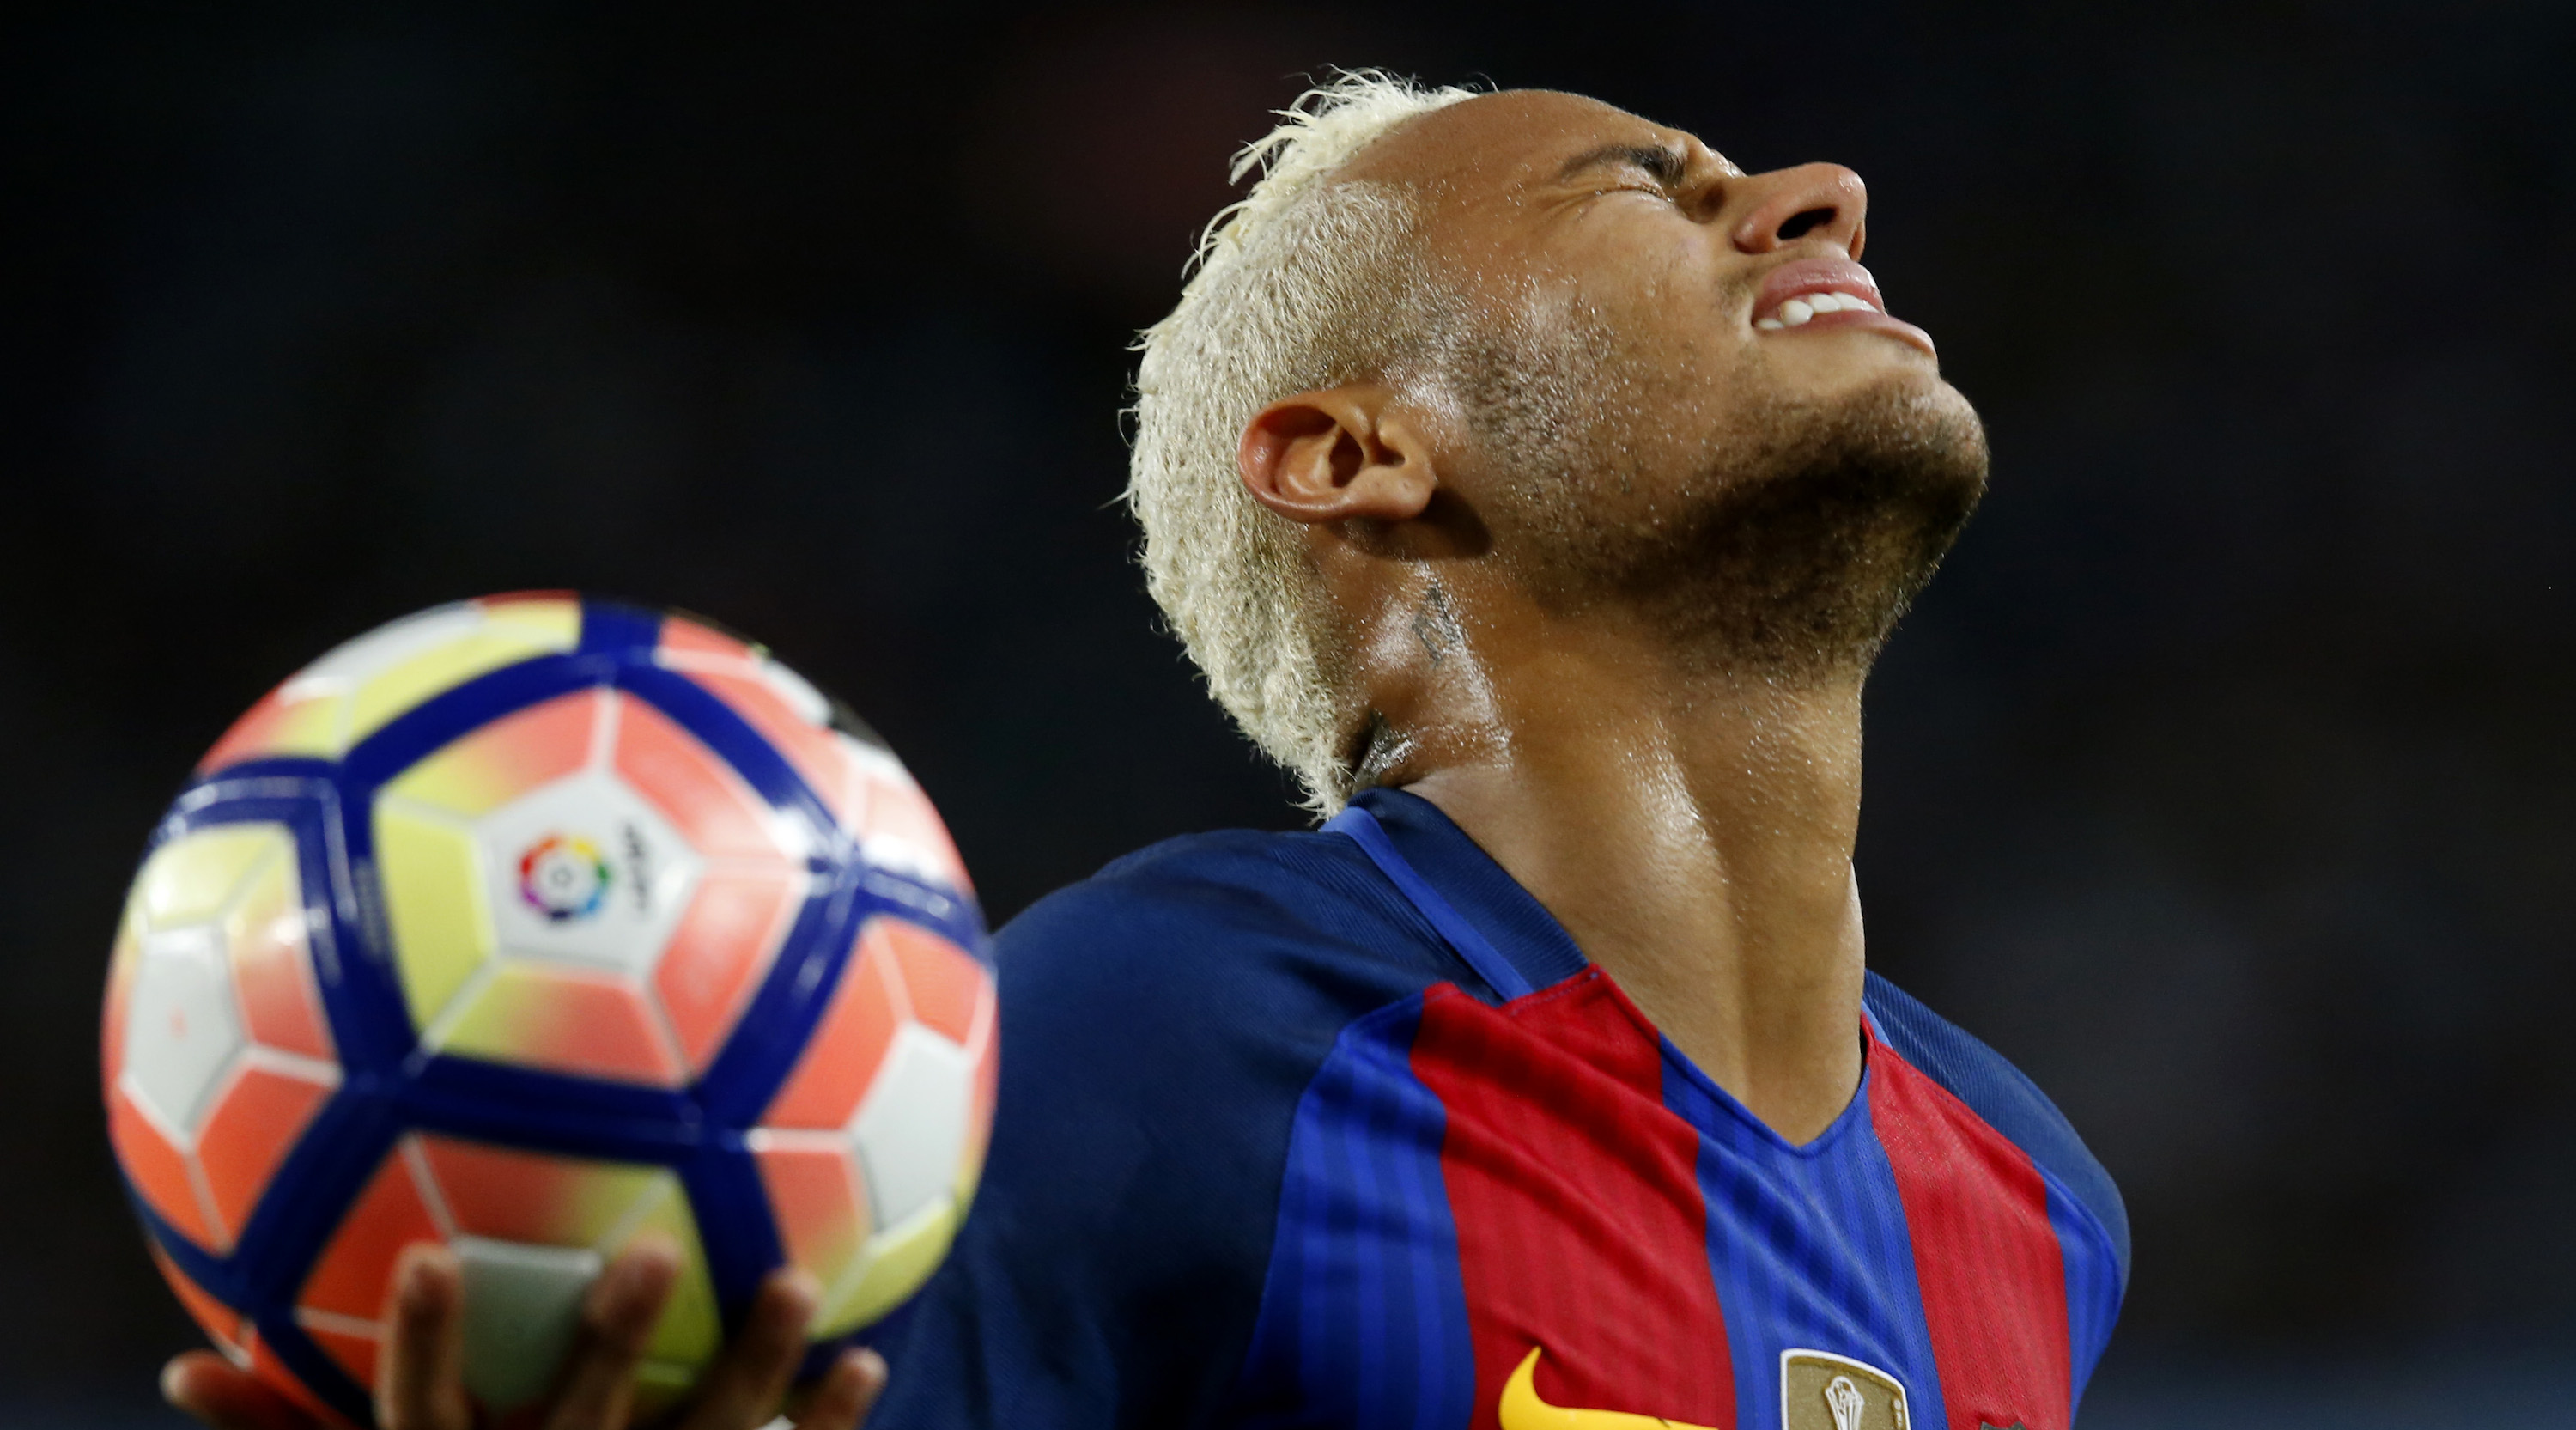 Barcelona's Brazilian forward Neymar gestures after missing a goal opportunity during the Spanish league football match FC Barcelona vs Atletico de Madrid at the Camp Nou stadium in Barcelona on September 21, 2016. / AFP / PAU BARRENA (Photo credit should read PAU BARRENA/AFP/Getty Images)